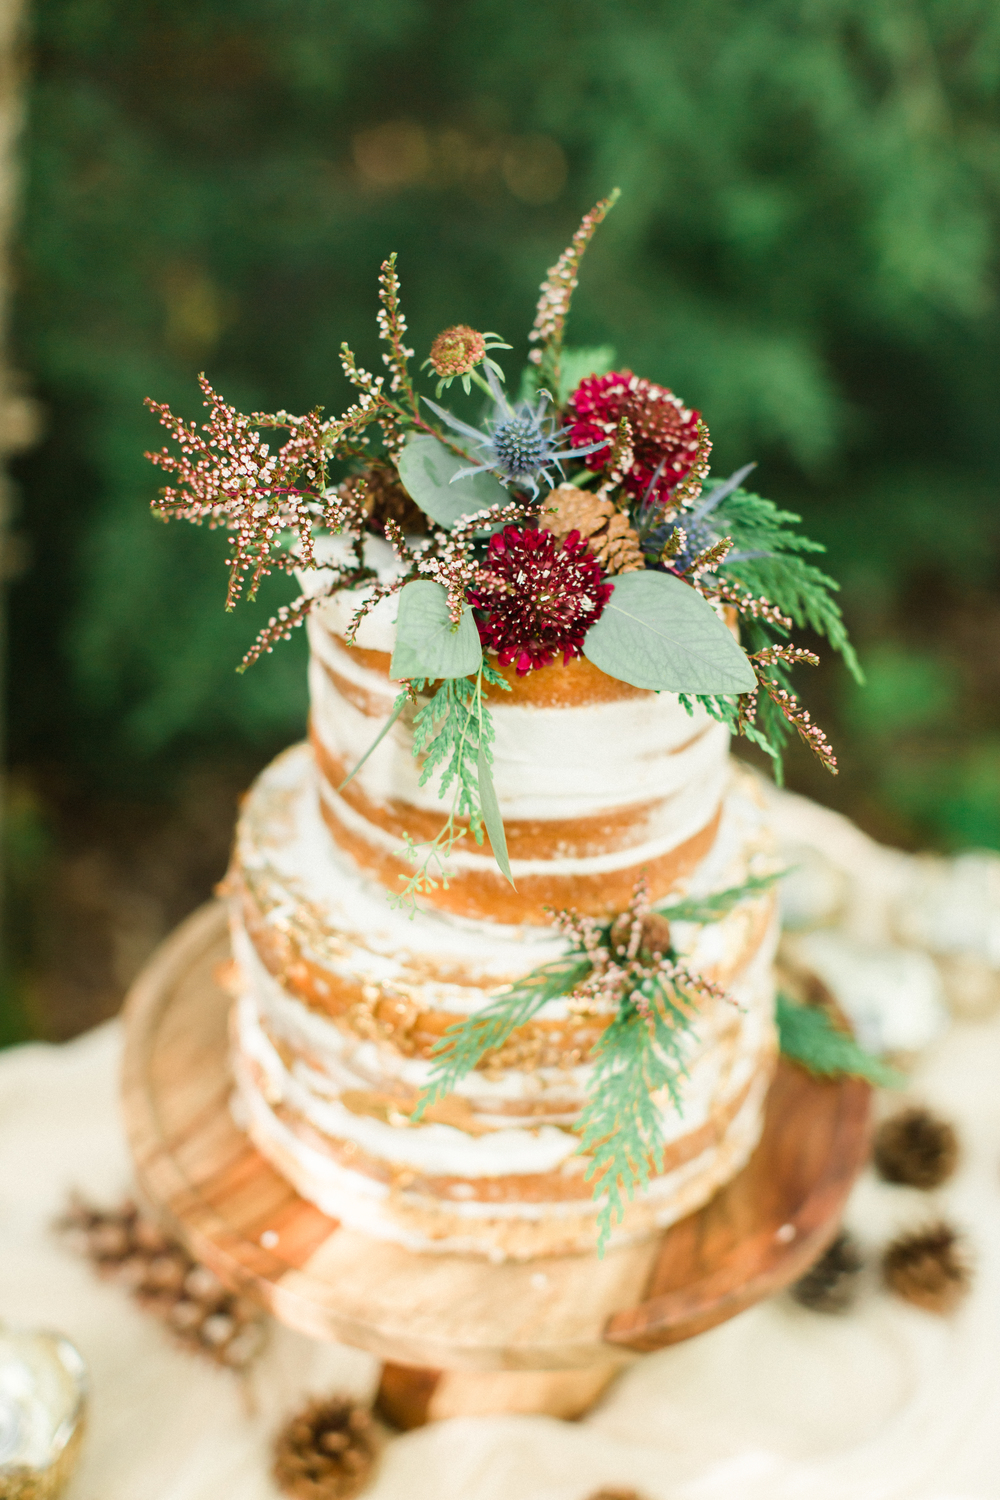 central-northern-wisconsin-wedding-cake-baker-creator-designer-in-Medford